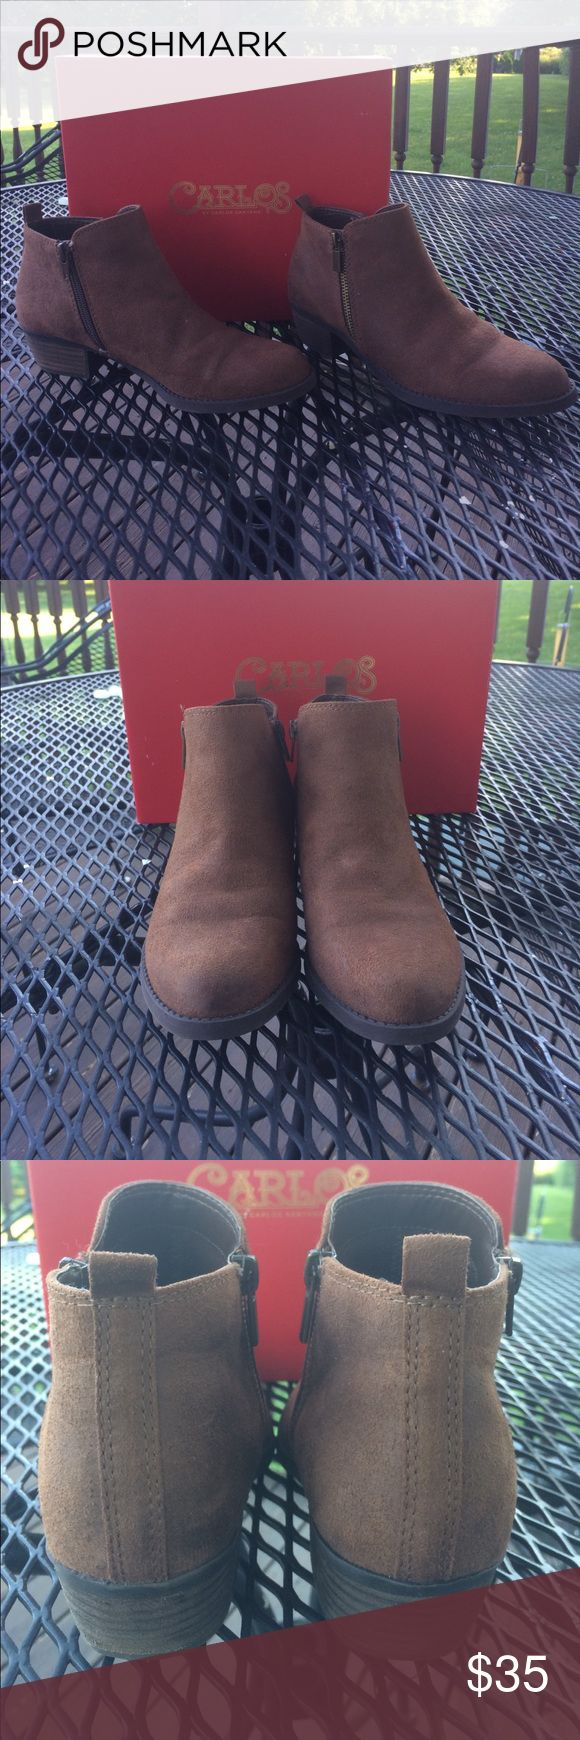 Carlos Santana boots EUC.  Worn a few times and outgrown. Carlos Santana Shoes Ankle Boots & Booties